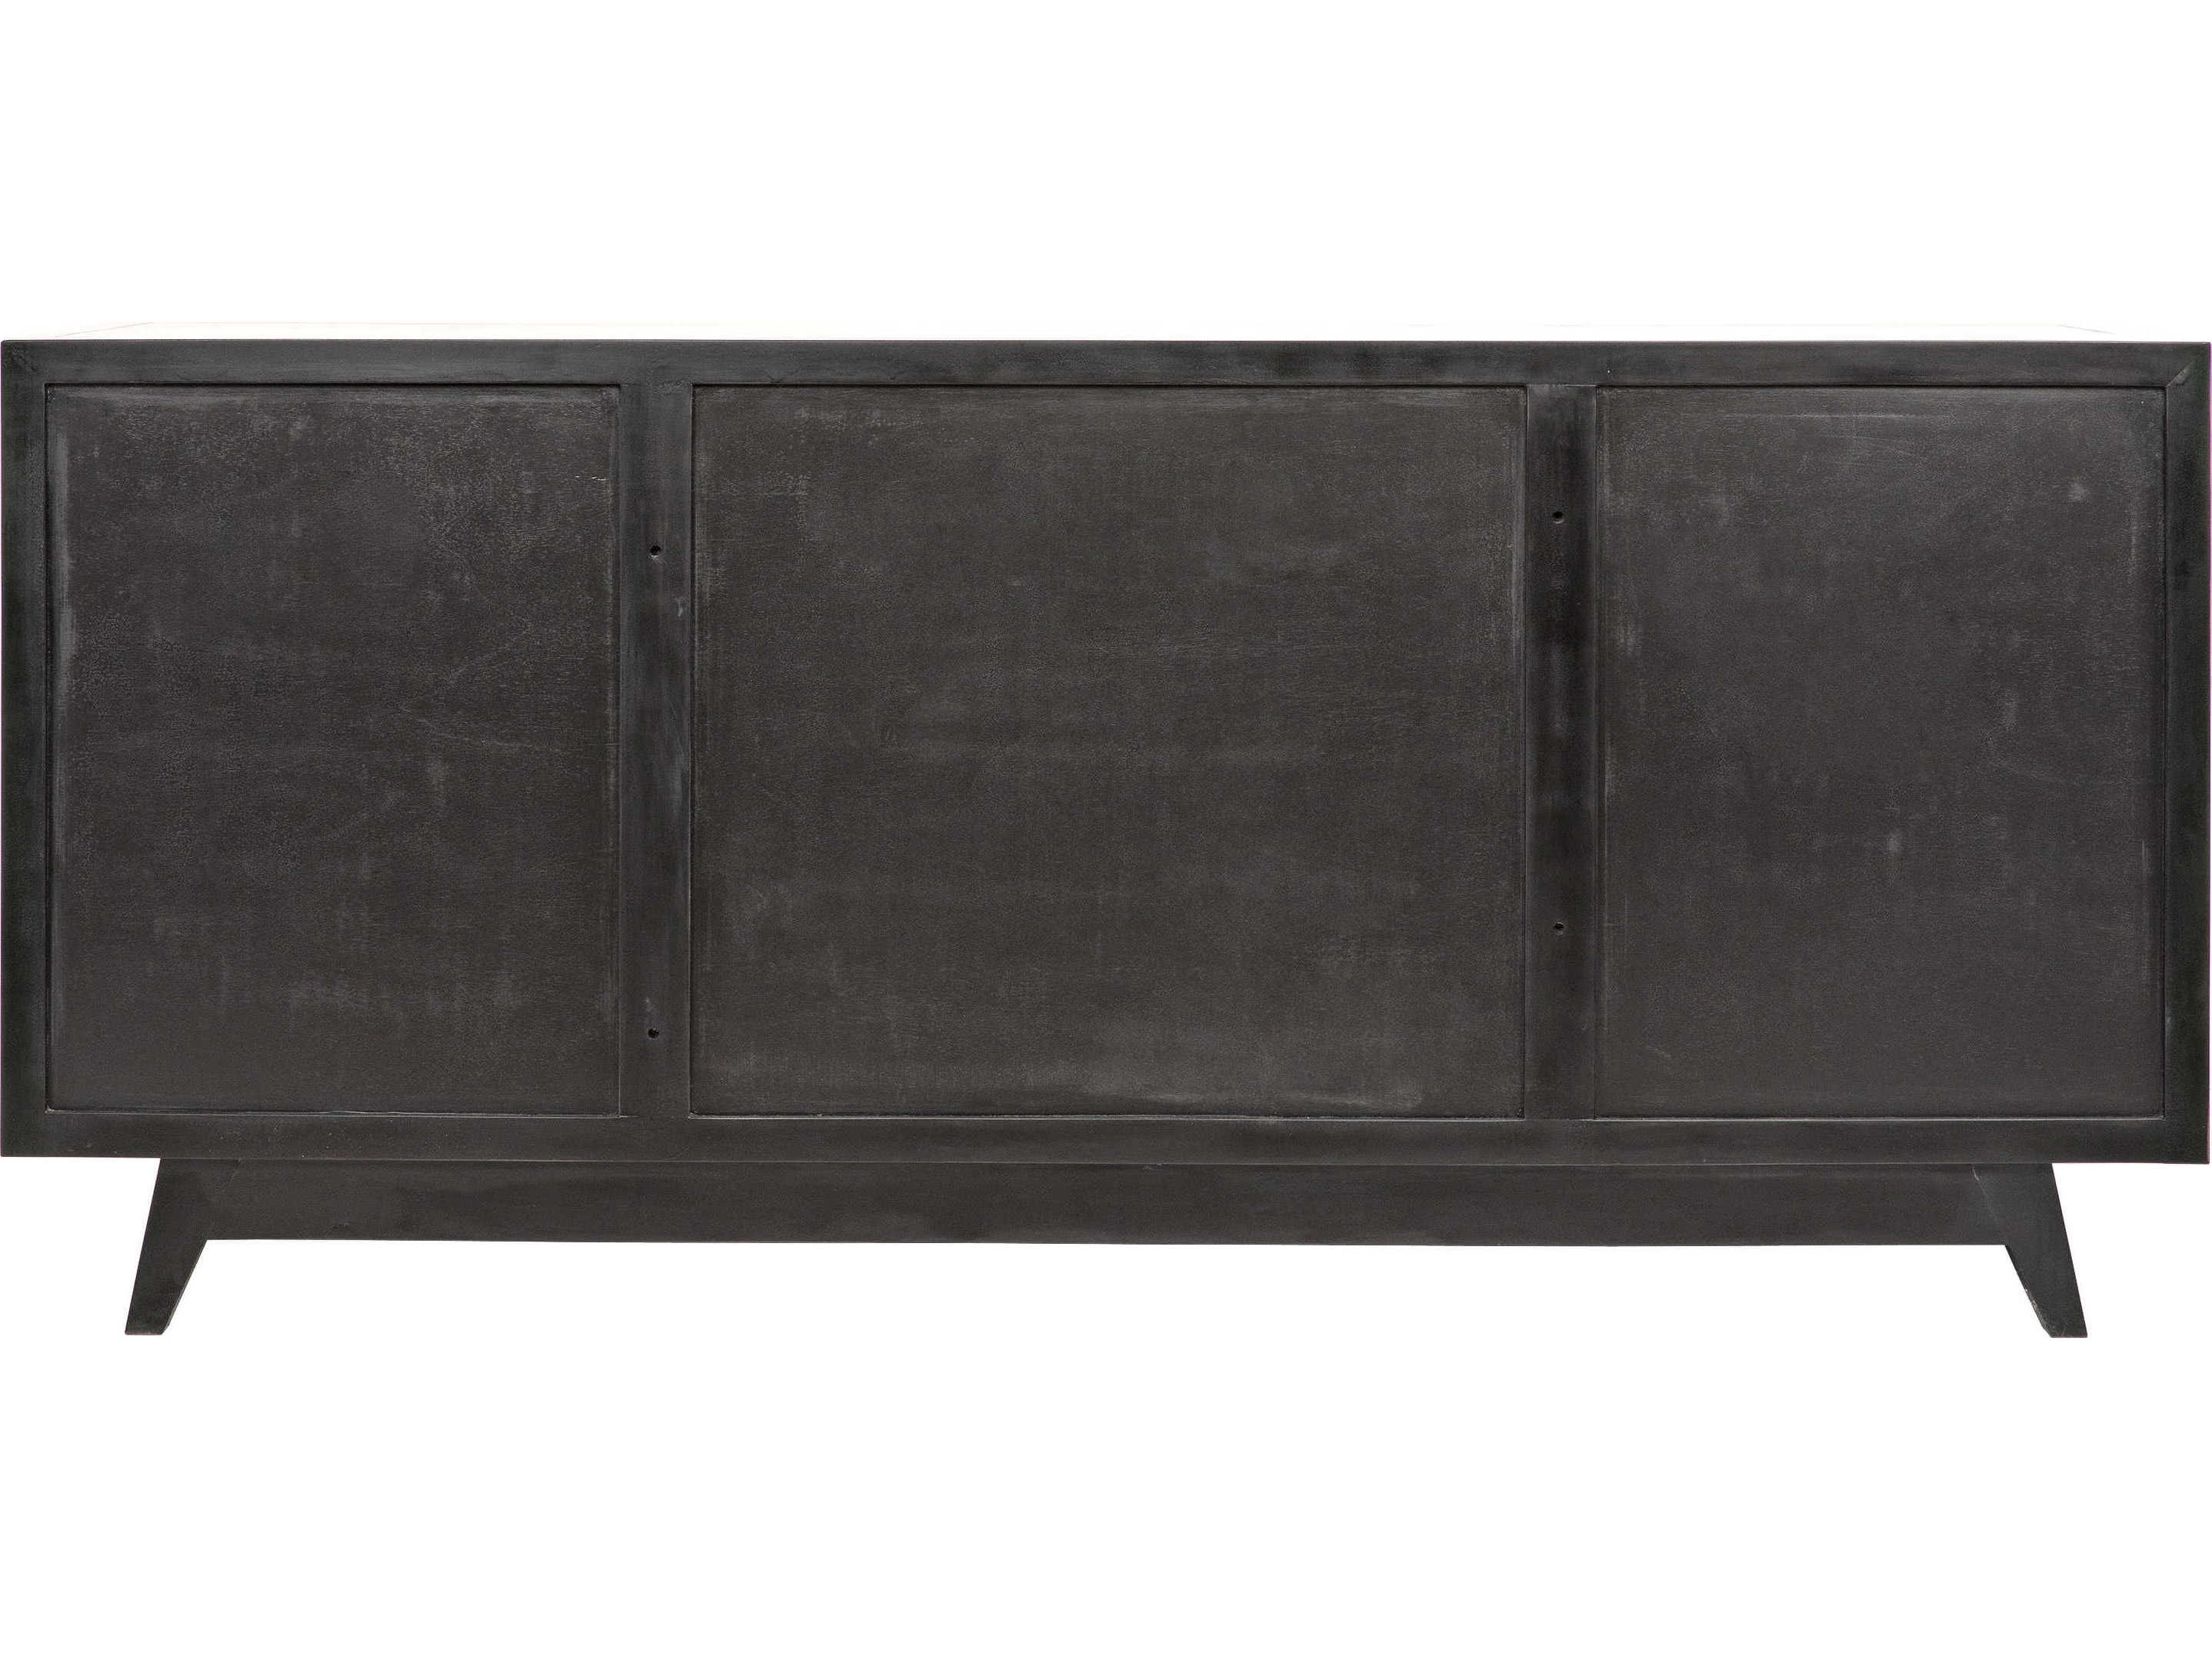 Noir Furniture Wyatt Charcoal 73'' X 23'' Sideboard | Noigcon249ch Within 2018 Wyatt Sideboards (View 18 of 20)